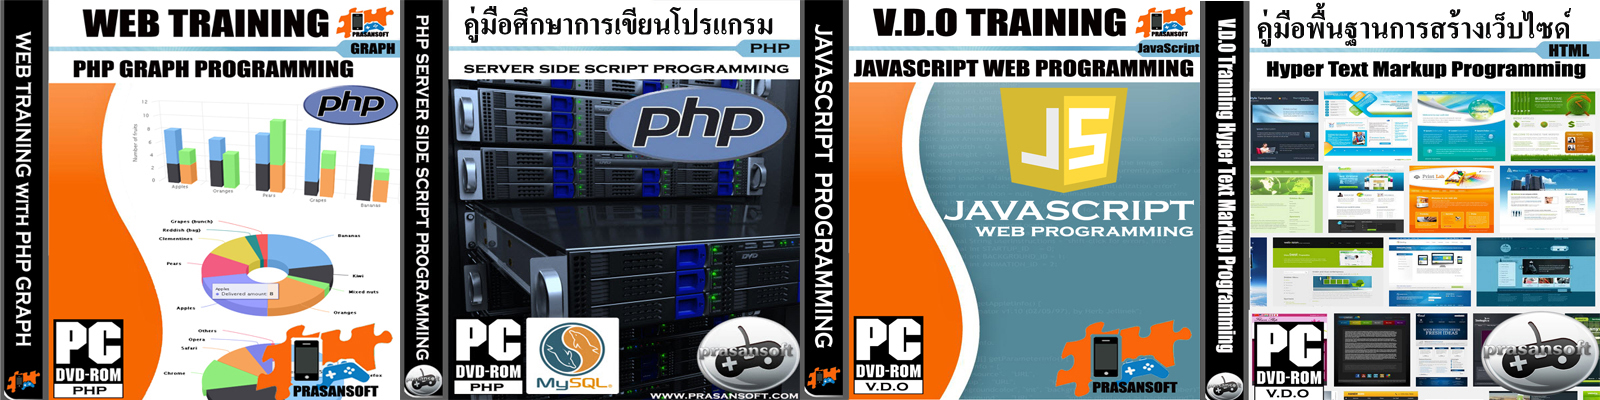 software website prasansoft